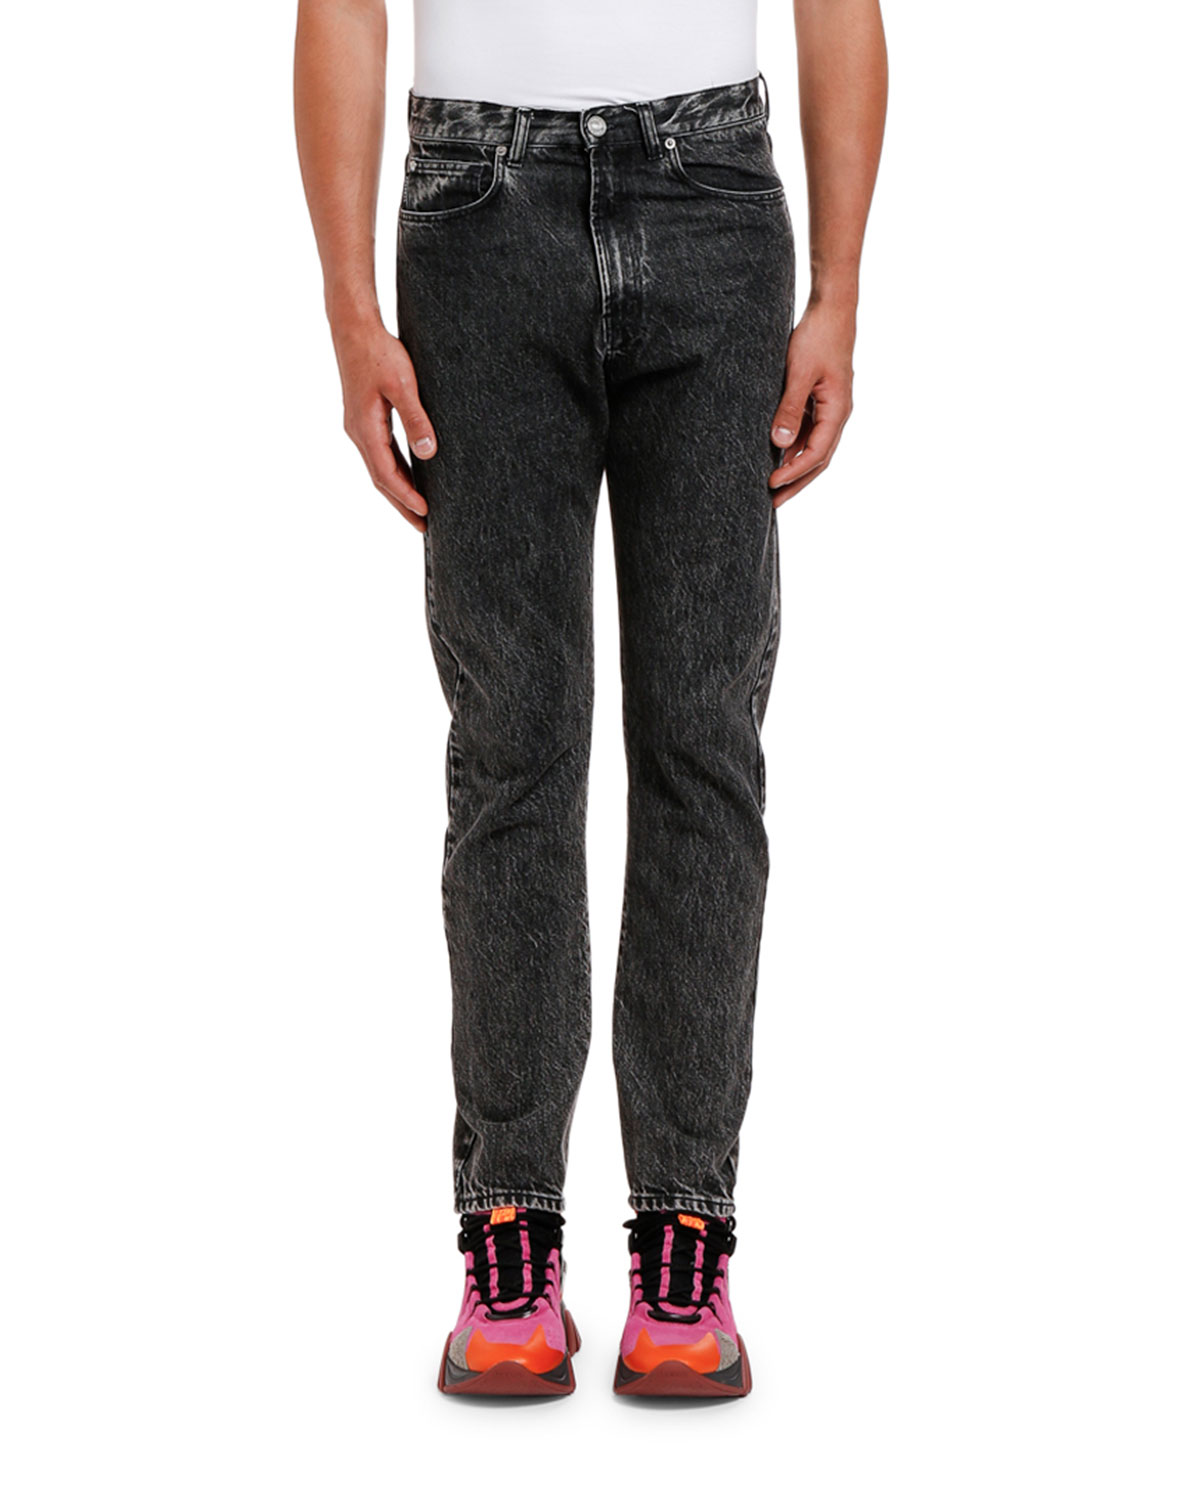 Versace Jeans MEN'S RELAXED WASHED DENIM JEANS